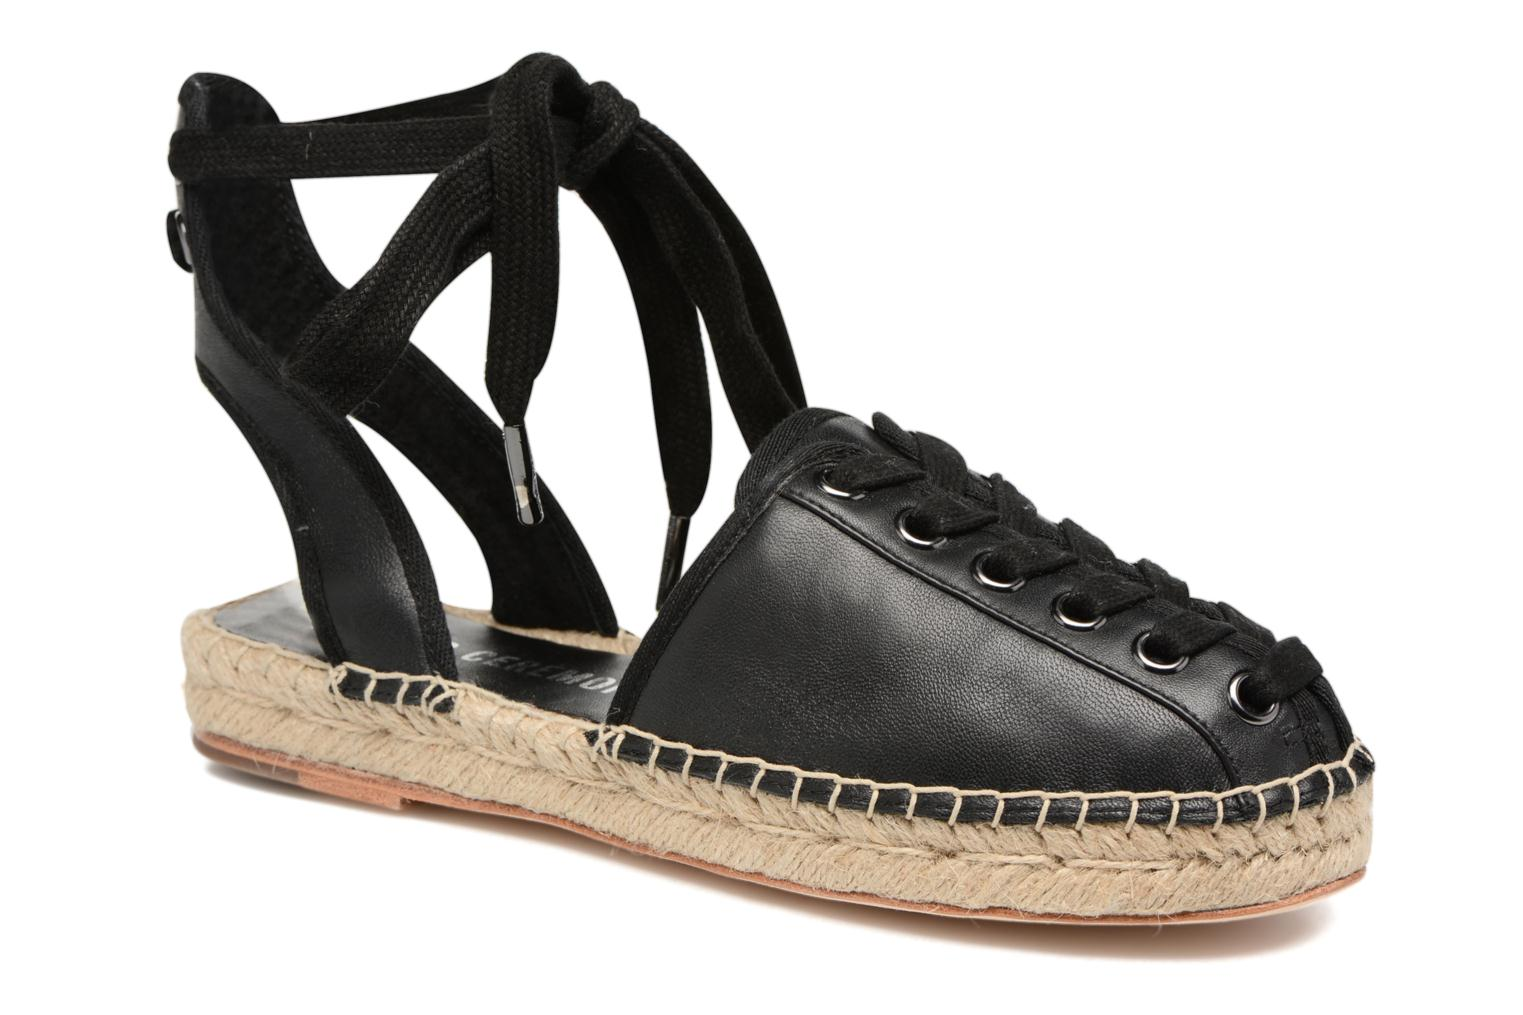 Marques Chaussure luxe femme Opening Ceremony femme Kahsea Espadrille Black